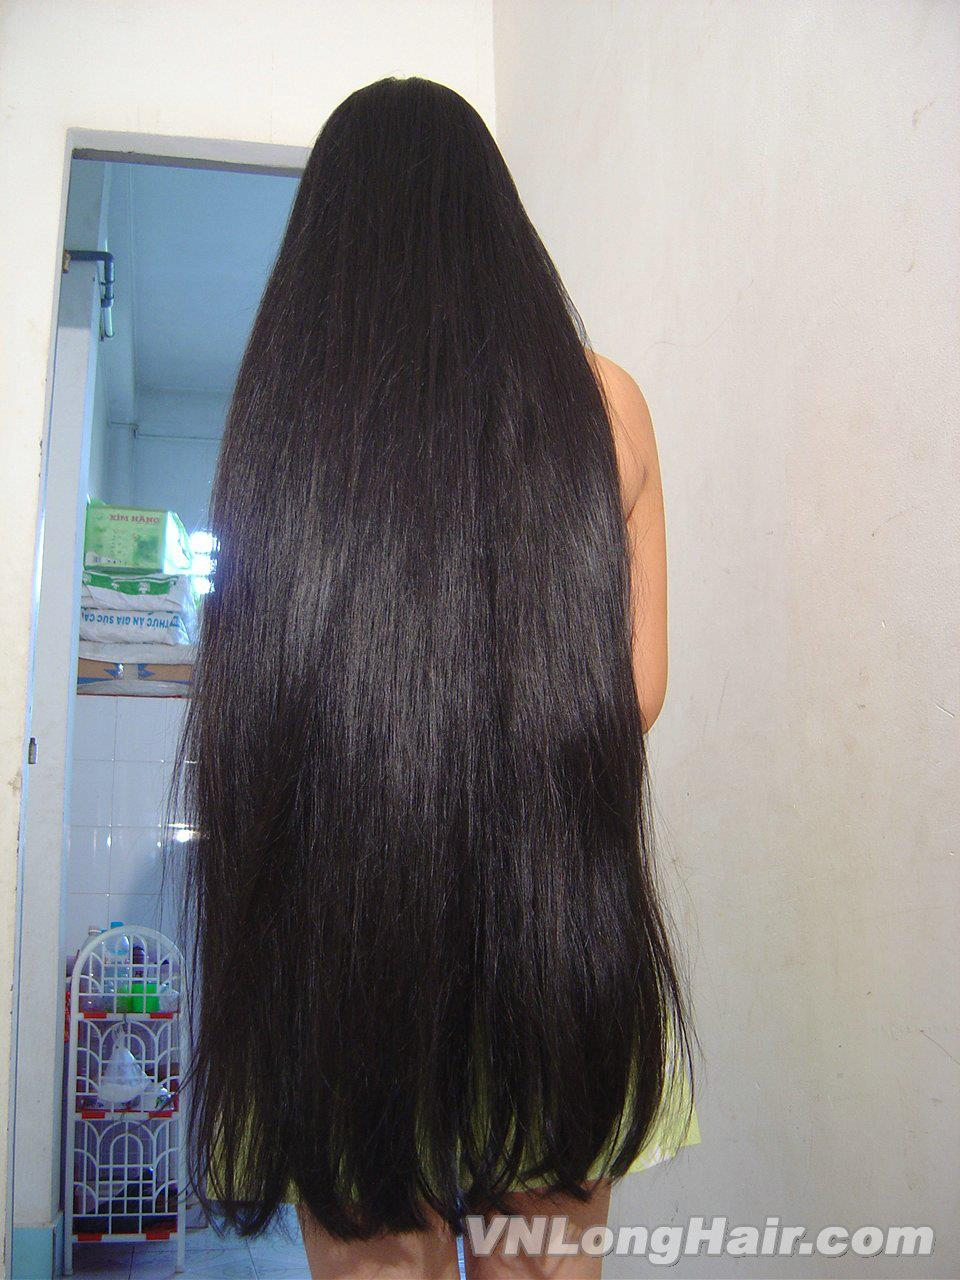 Indian Long Hair Site March 2012